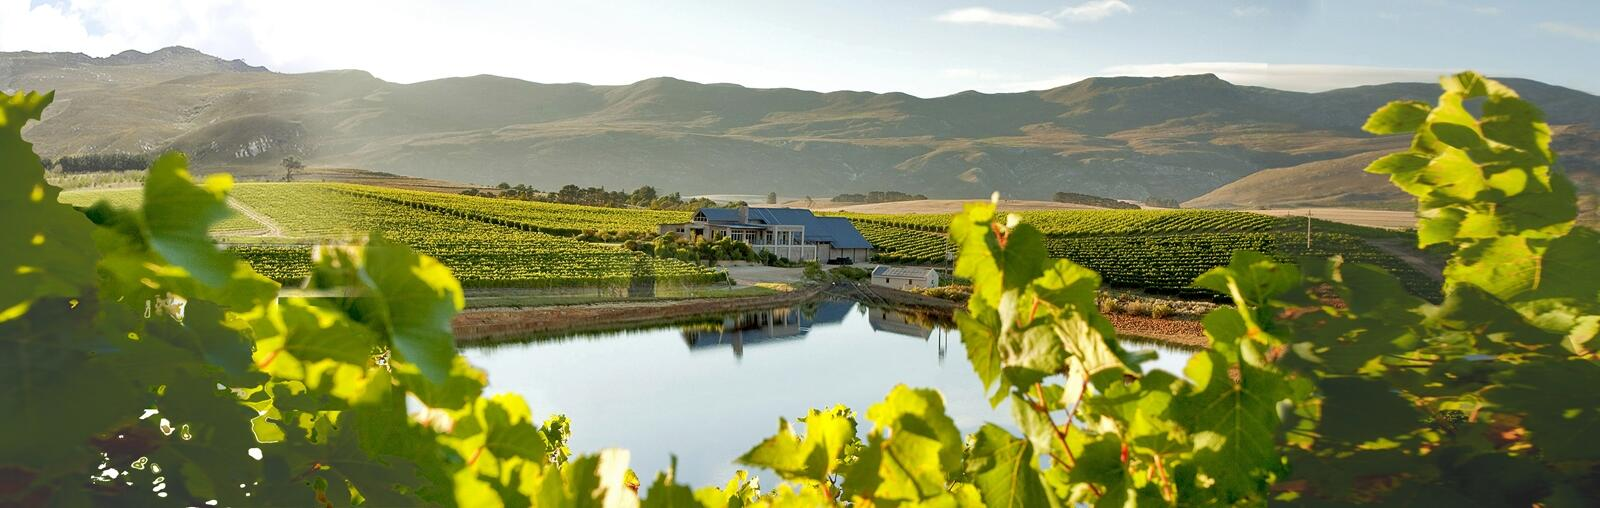 A sunny view of the Creation main building from the vinyards across a dam.